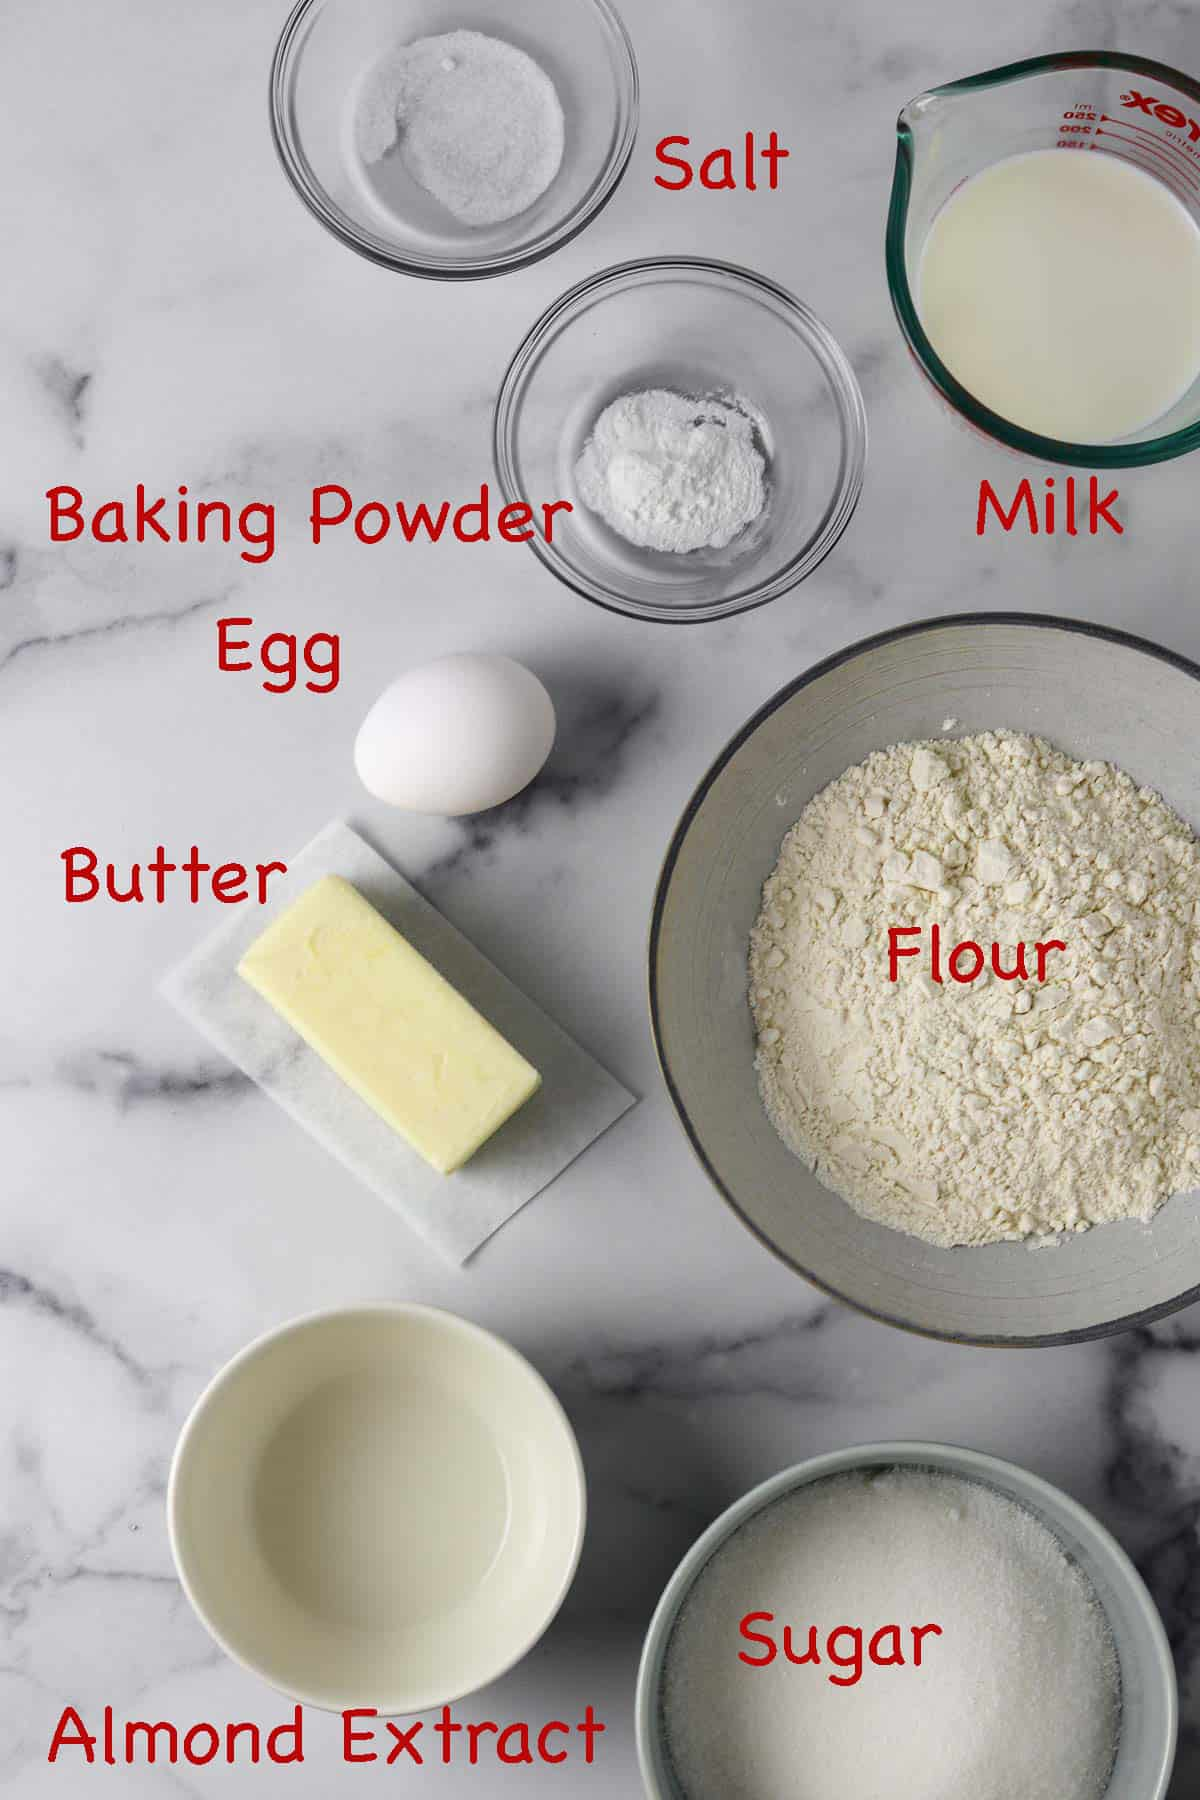 Labeled ingredients for Swedish Almond Cake.